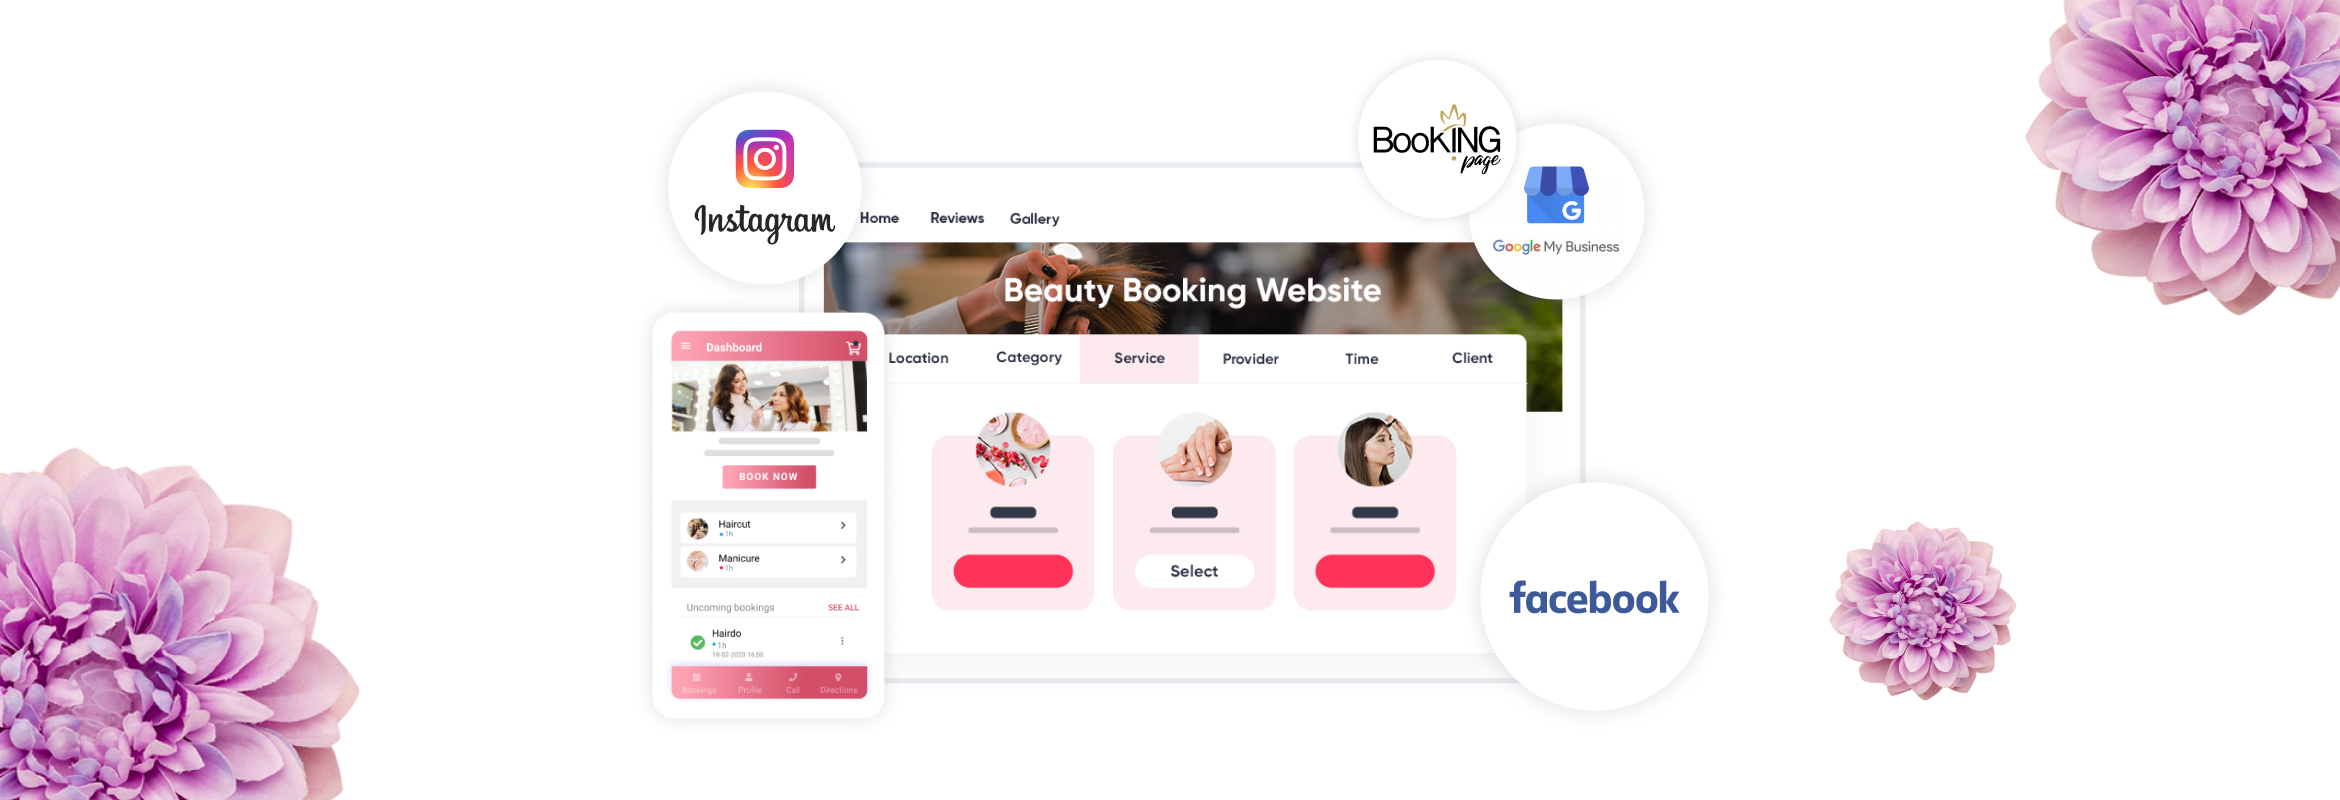 scheduling management platform - SimplyBook.me, the best option for beauty and wellness